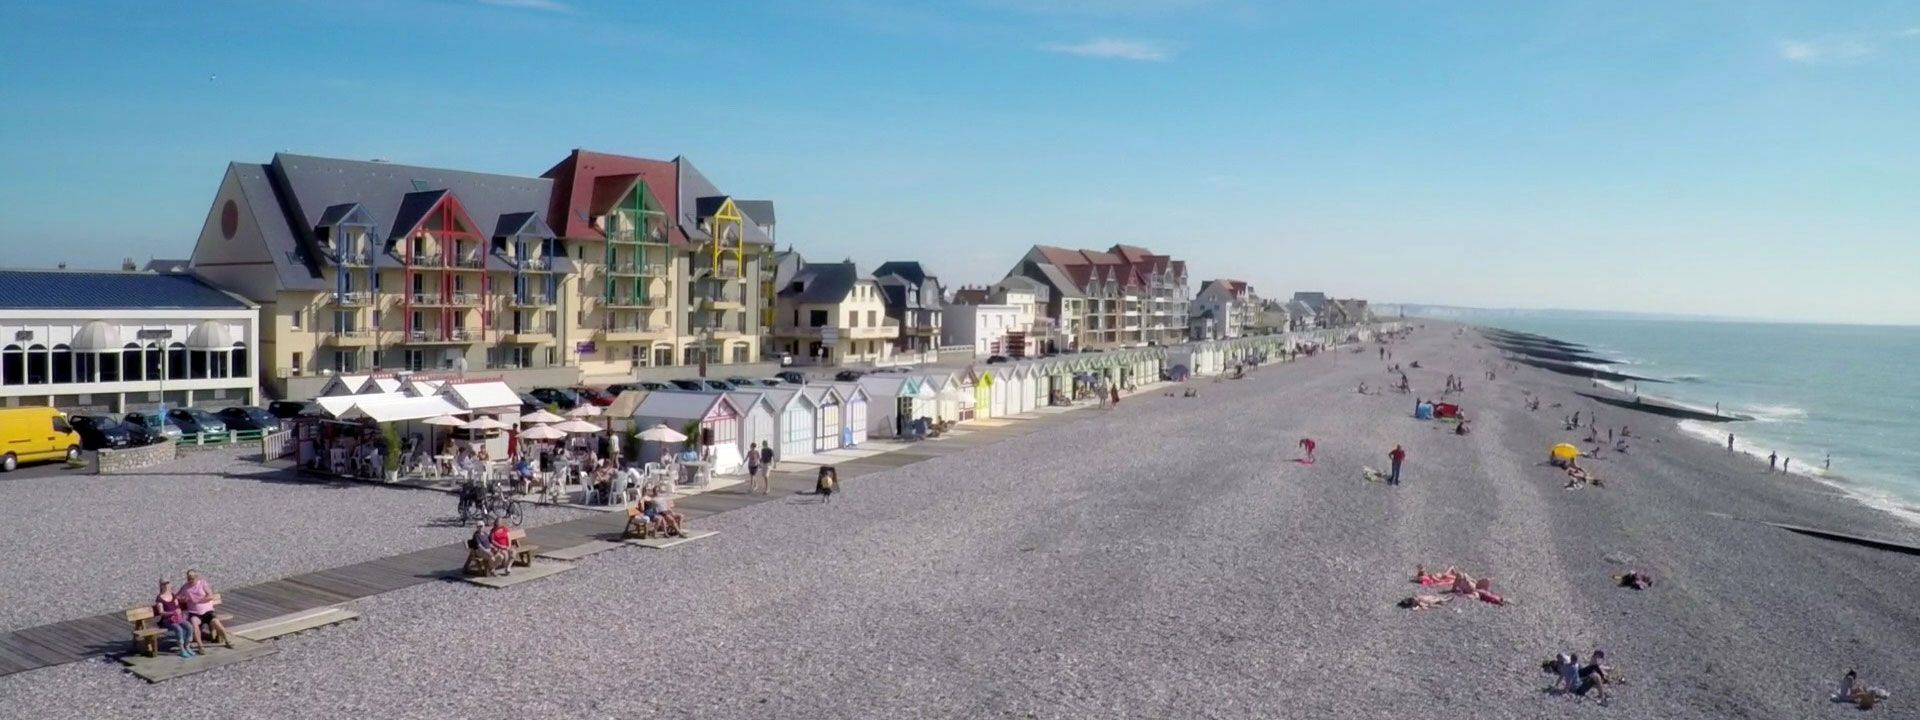 Camping Cayeux Sur Mer Somme CAMPING LE ROYON